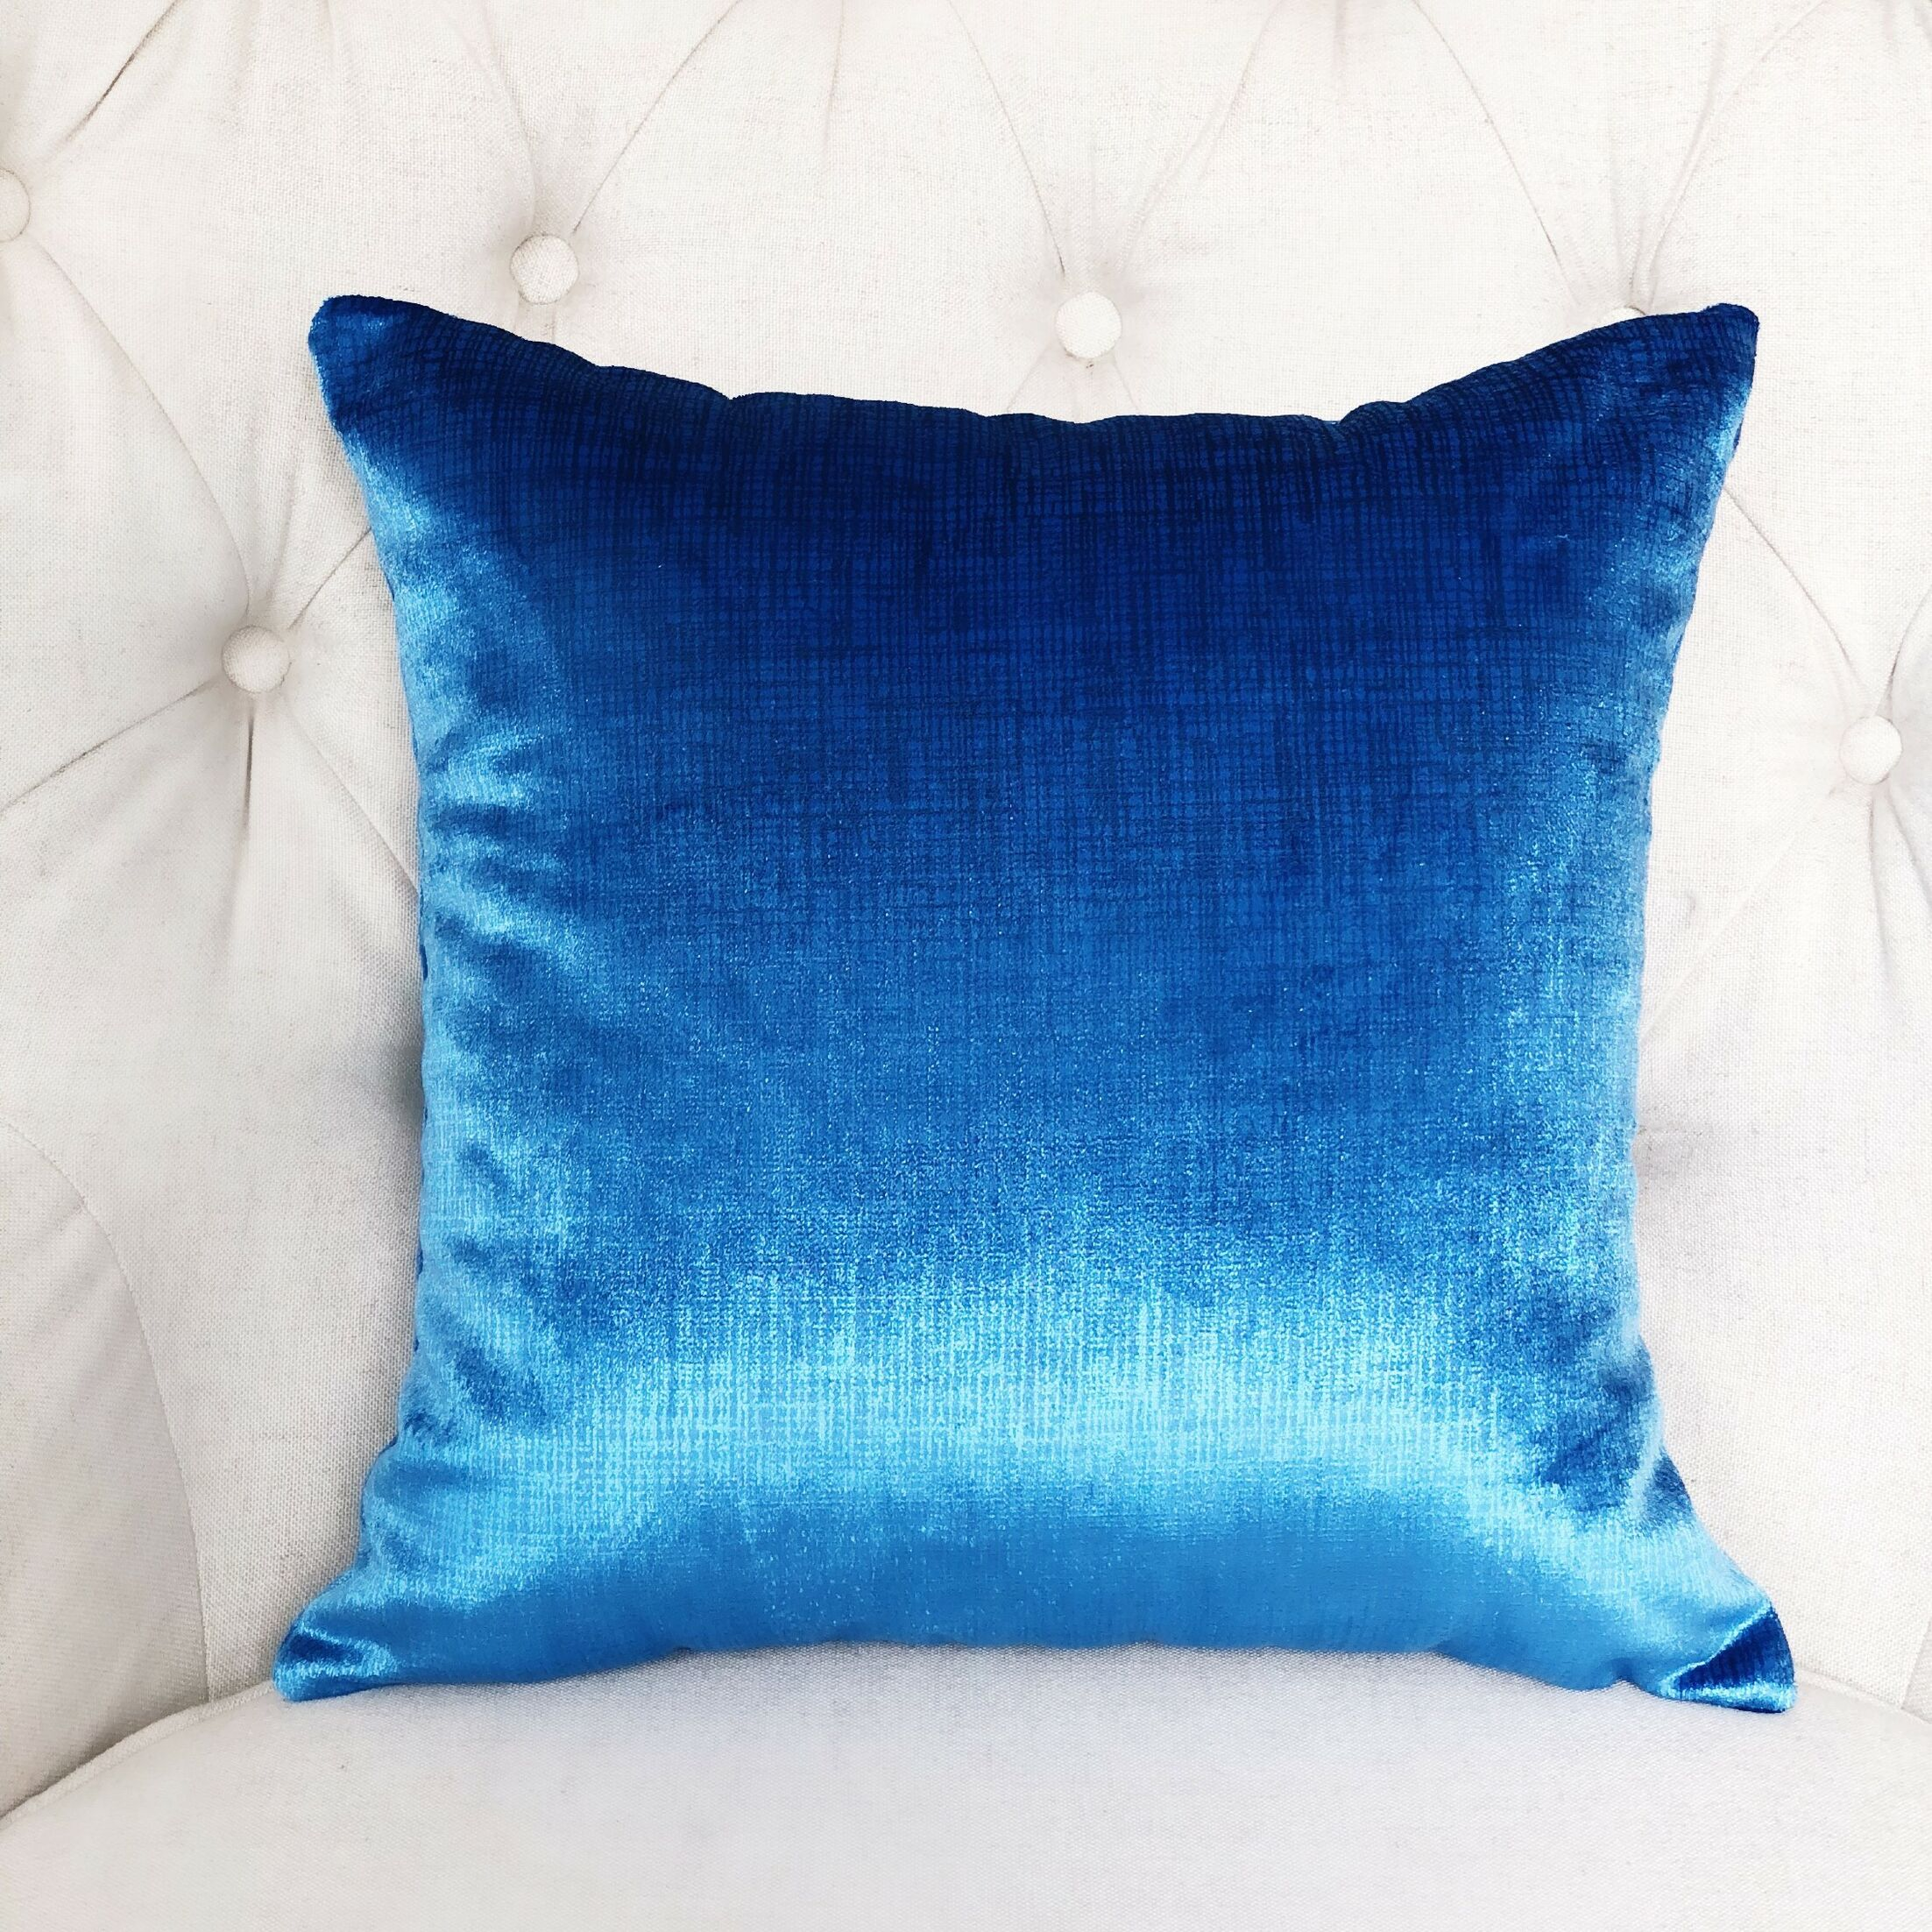 Garrow Handmade Luxury Pillow Size: 24